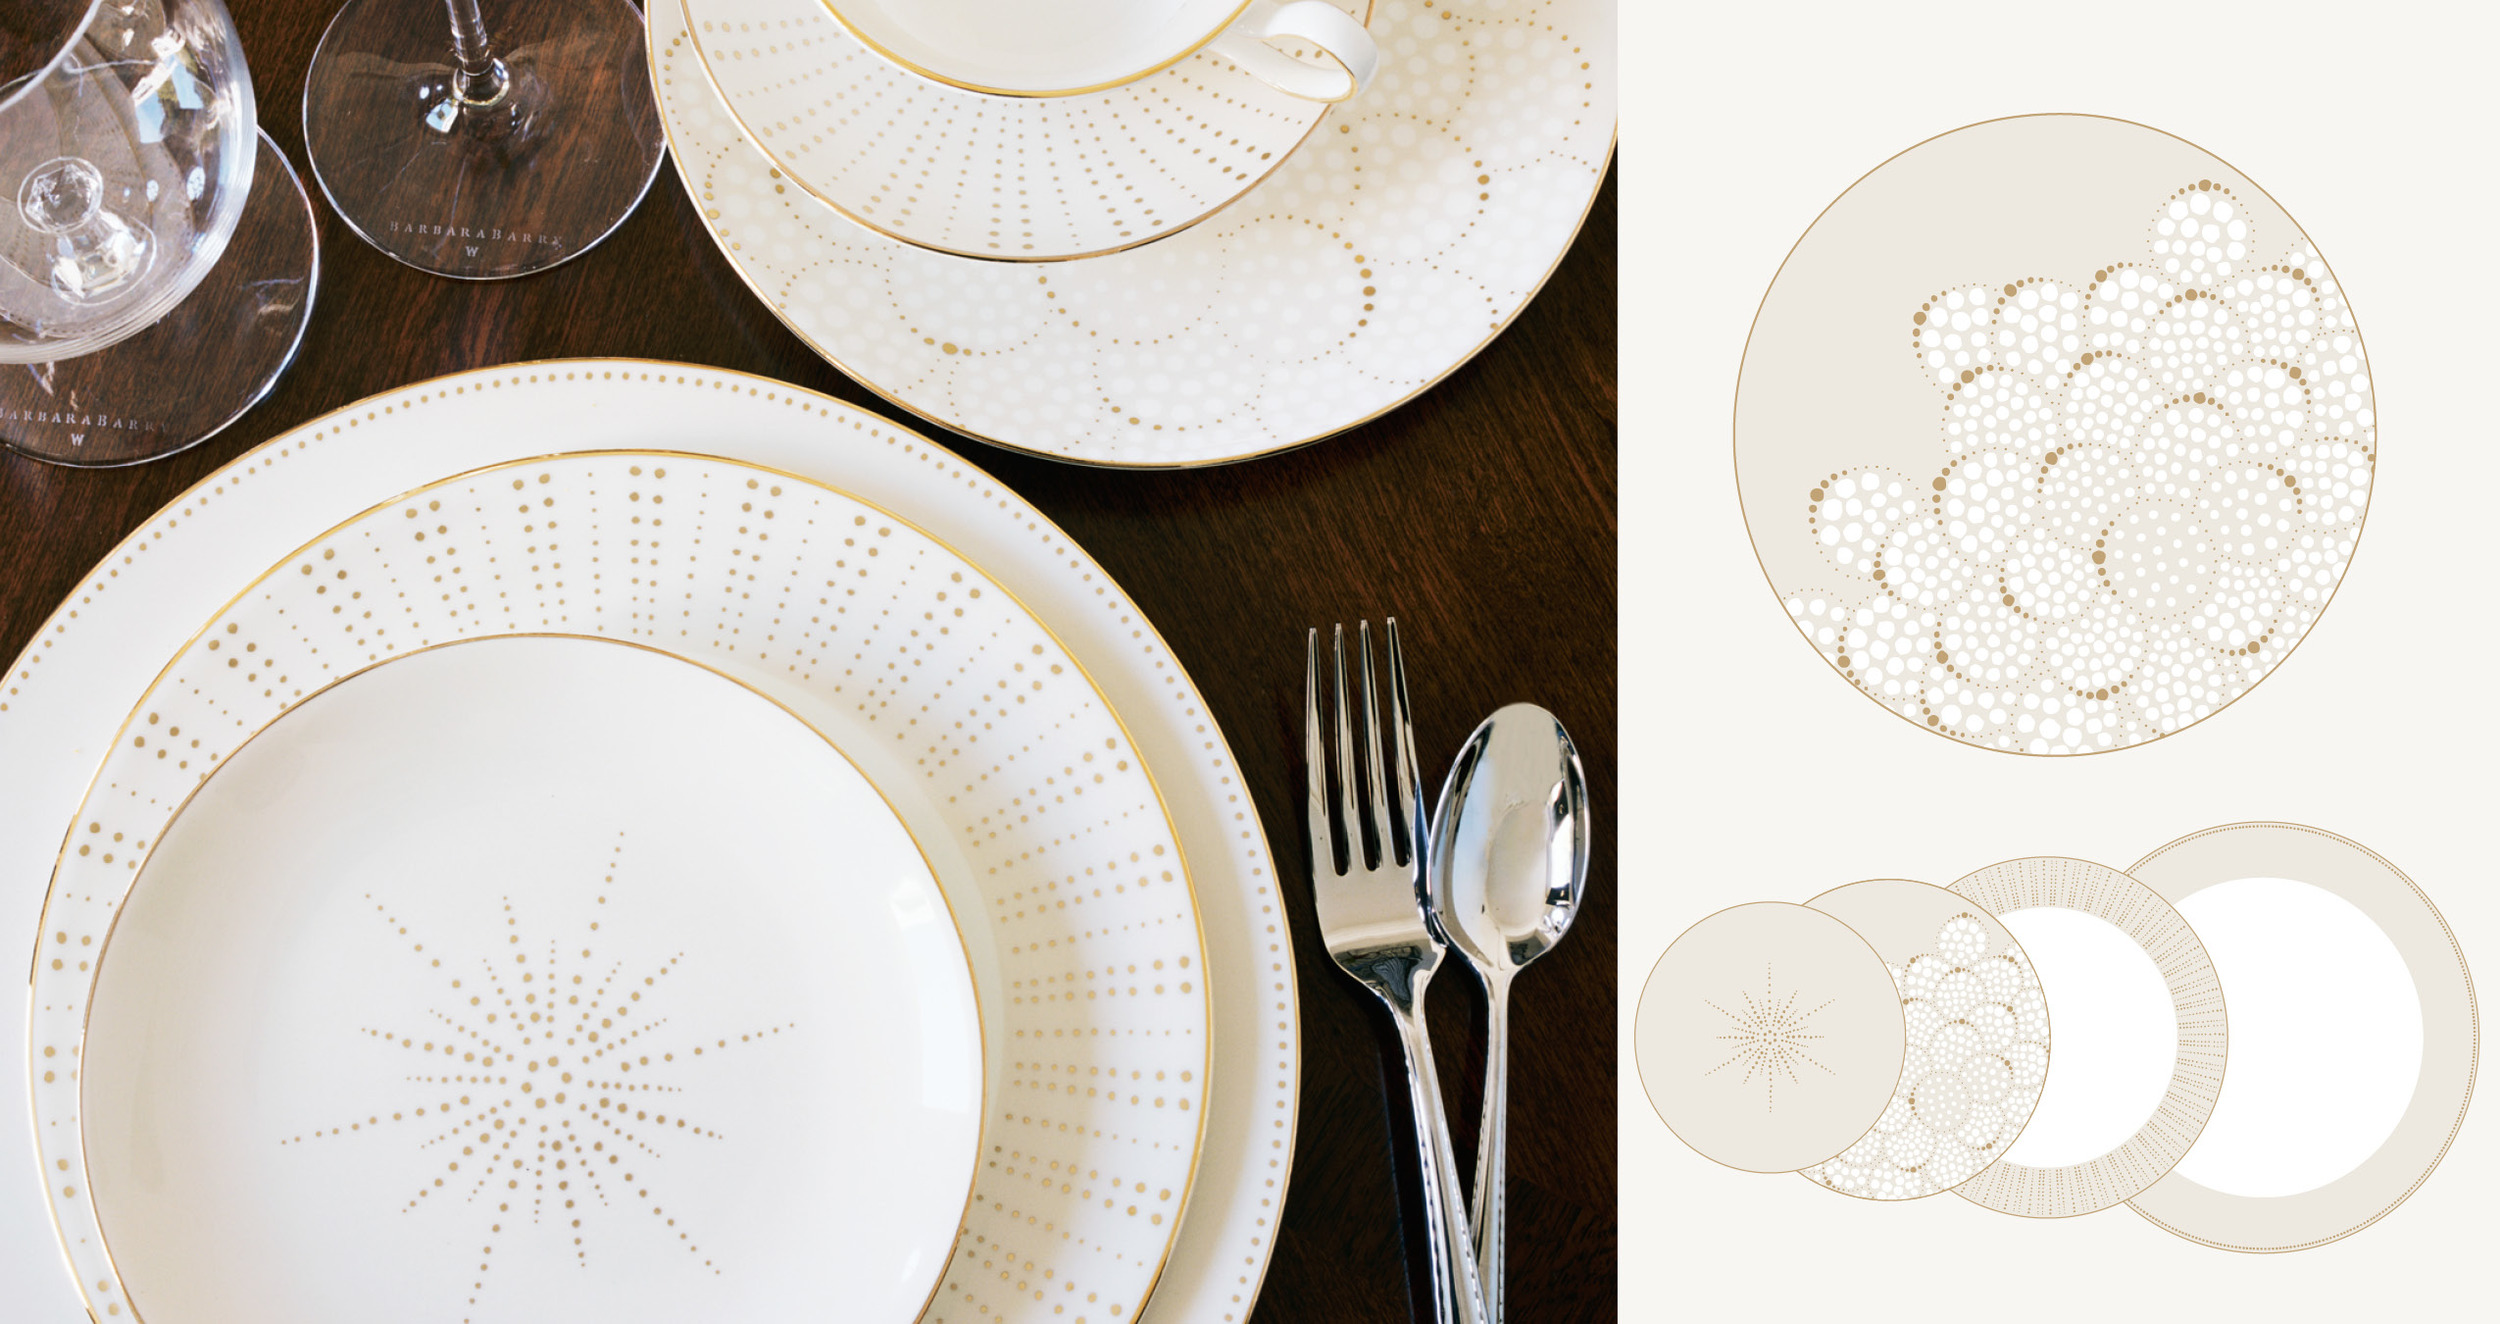 Barbara Barry for Wedgwood  - Four bone china dinnerware collections including accent plates, developed at the direction of Barbara Barry.